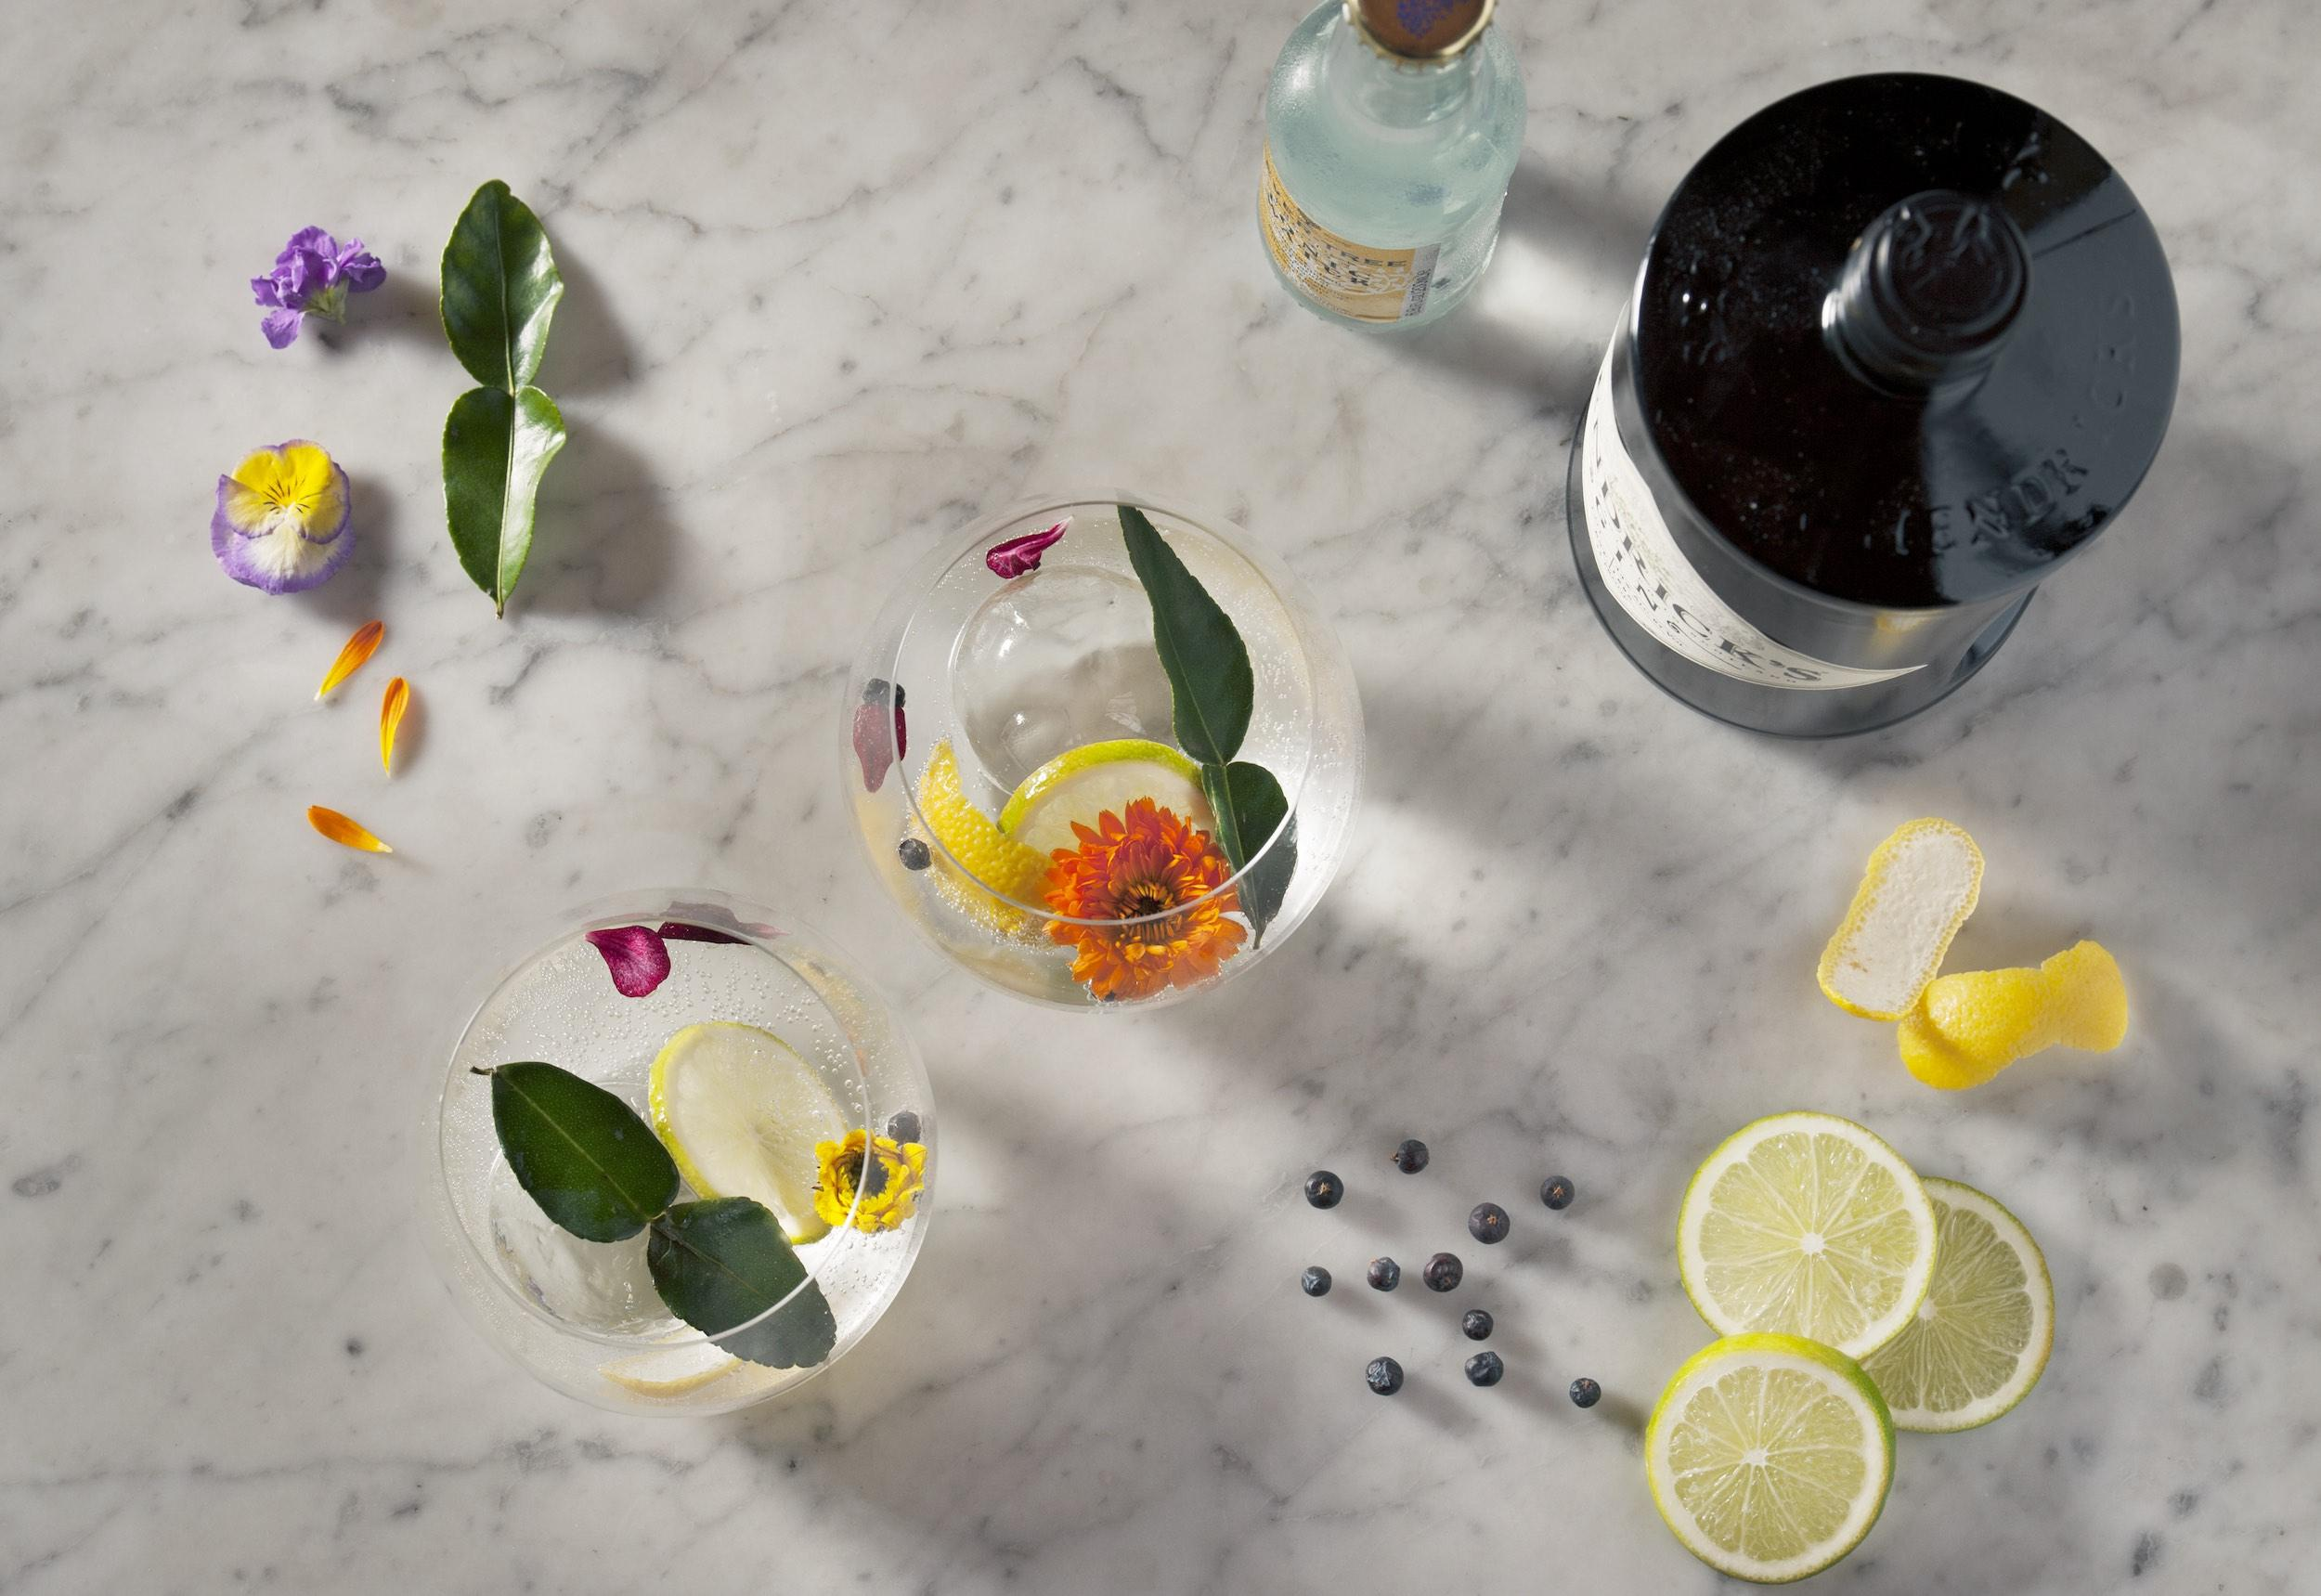 citrus, flowers and ingredients for a gin and tonic